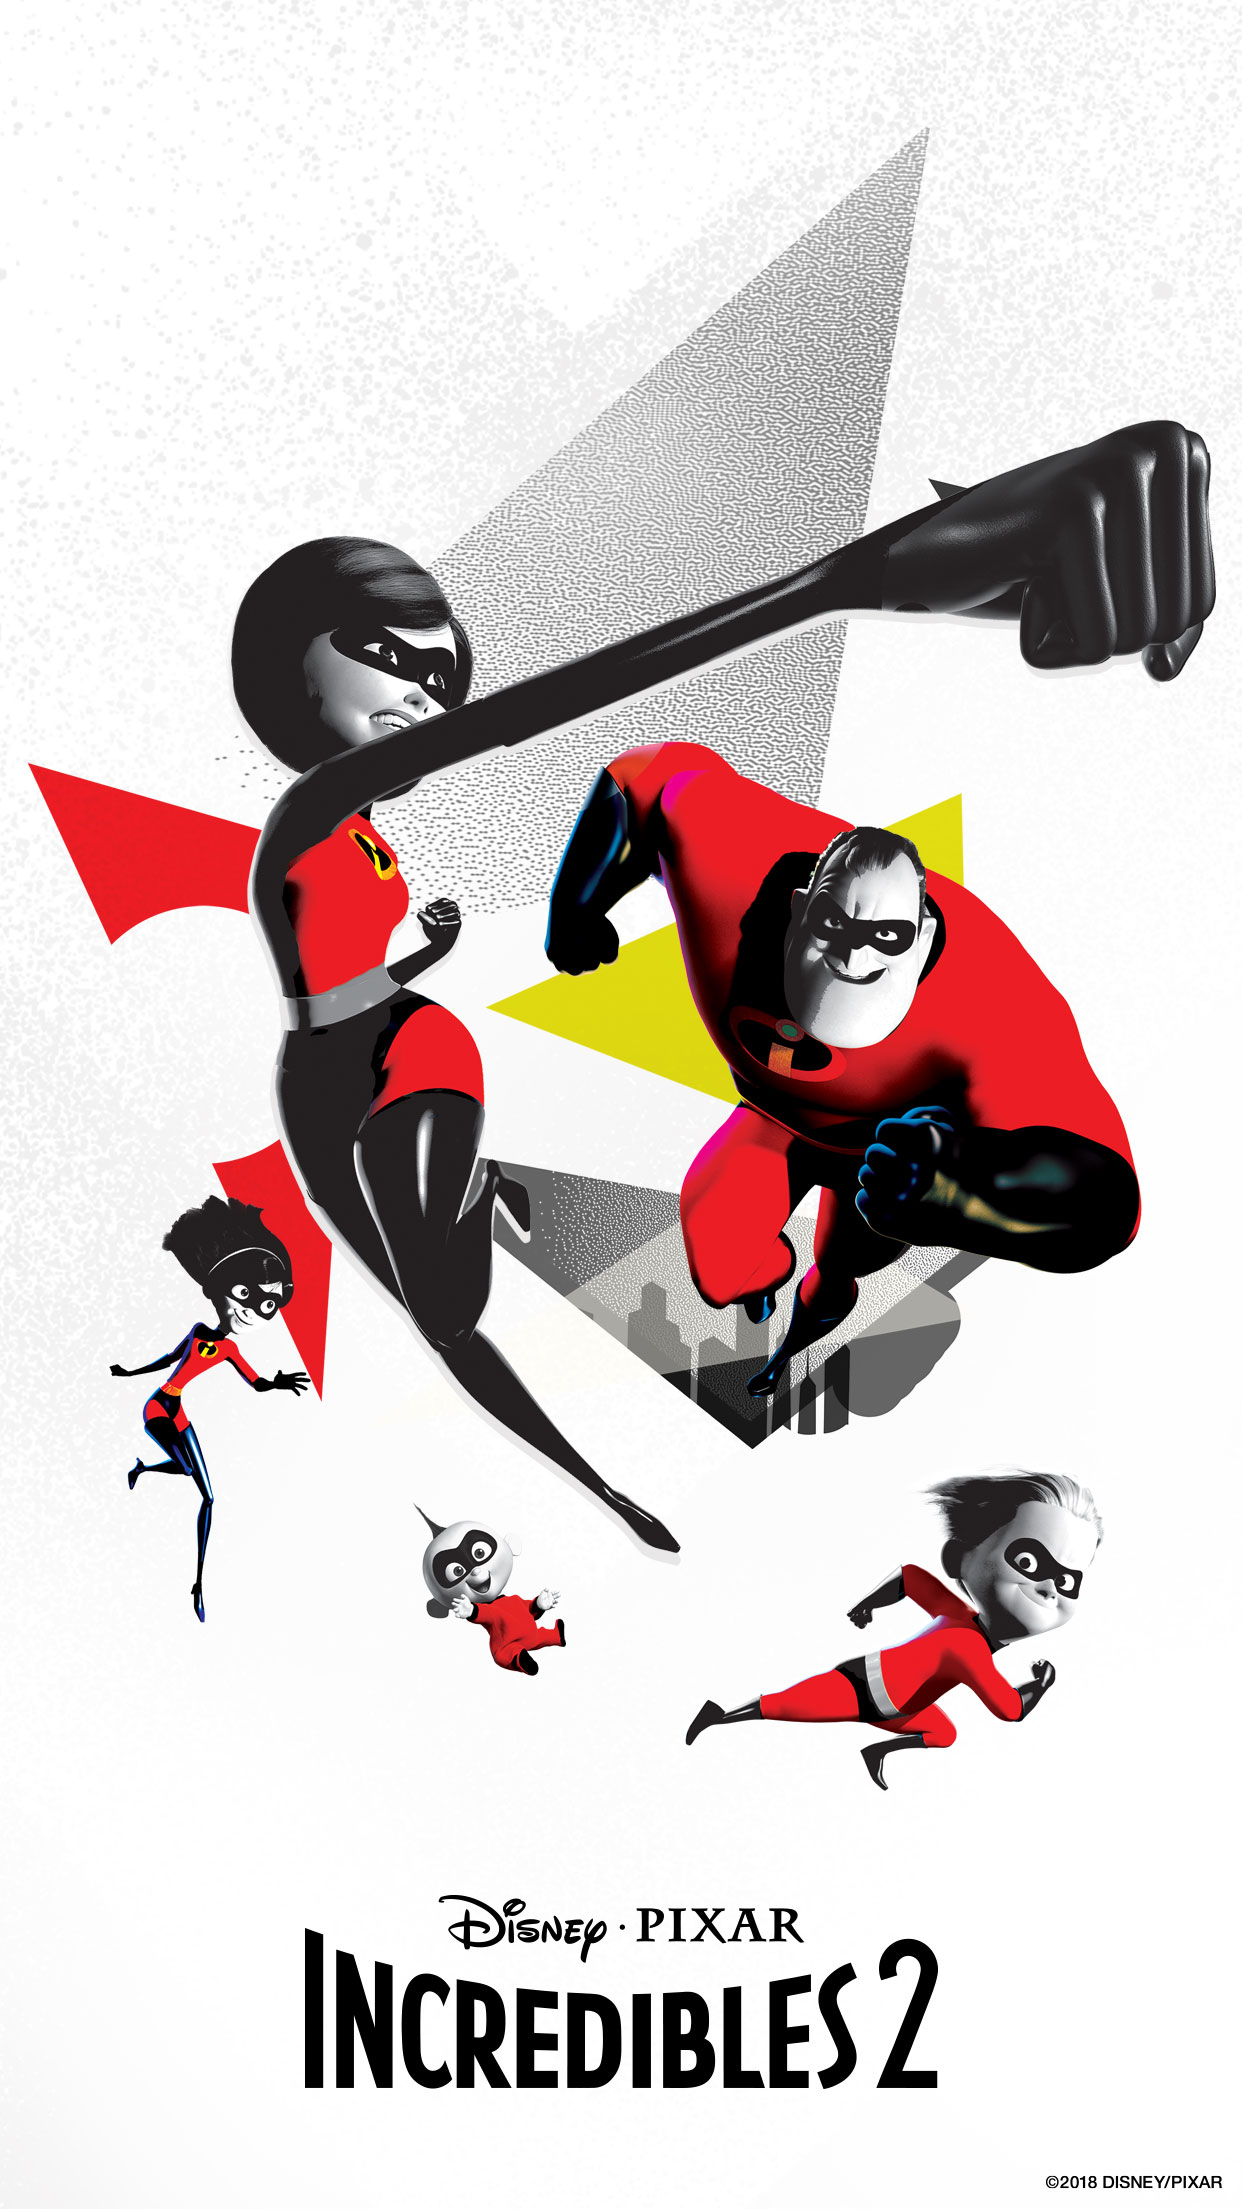 The Incredibles Cartoon Widescreen Wallpaper Image for Phone